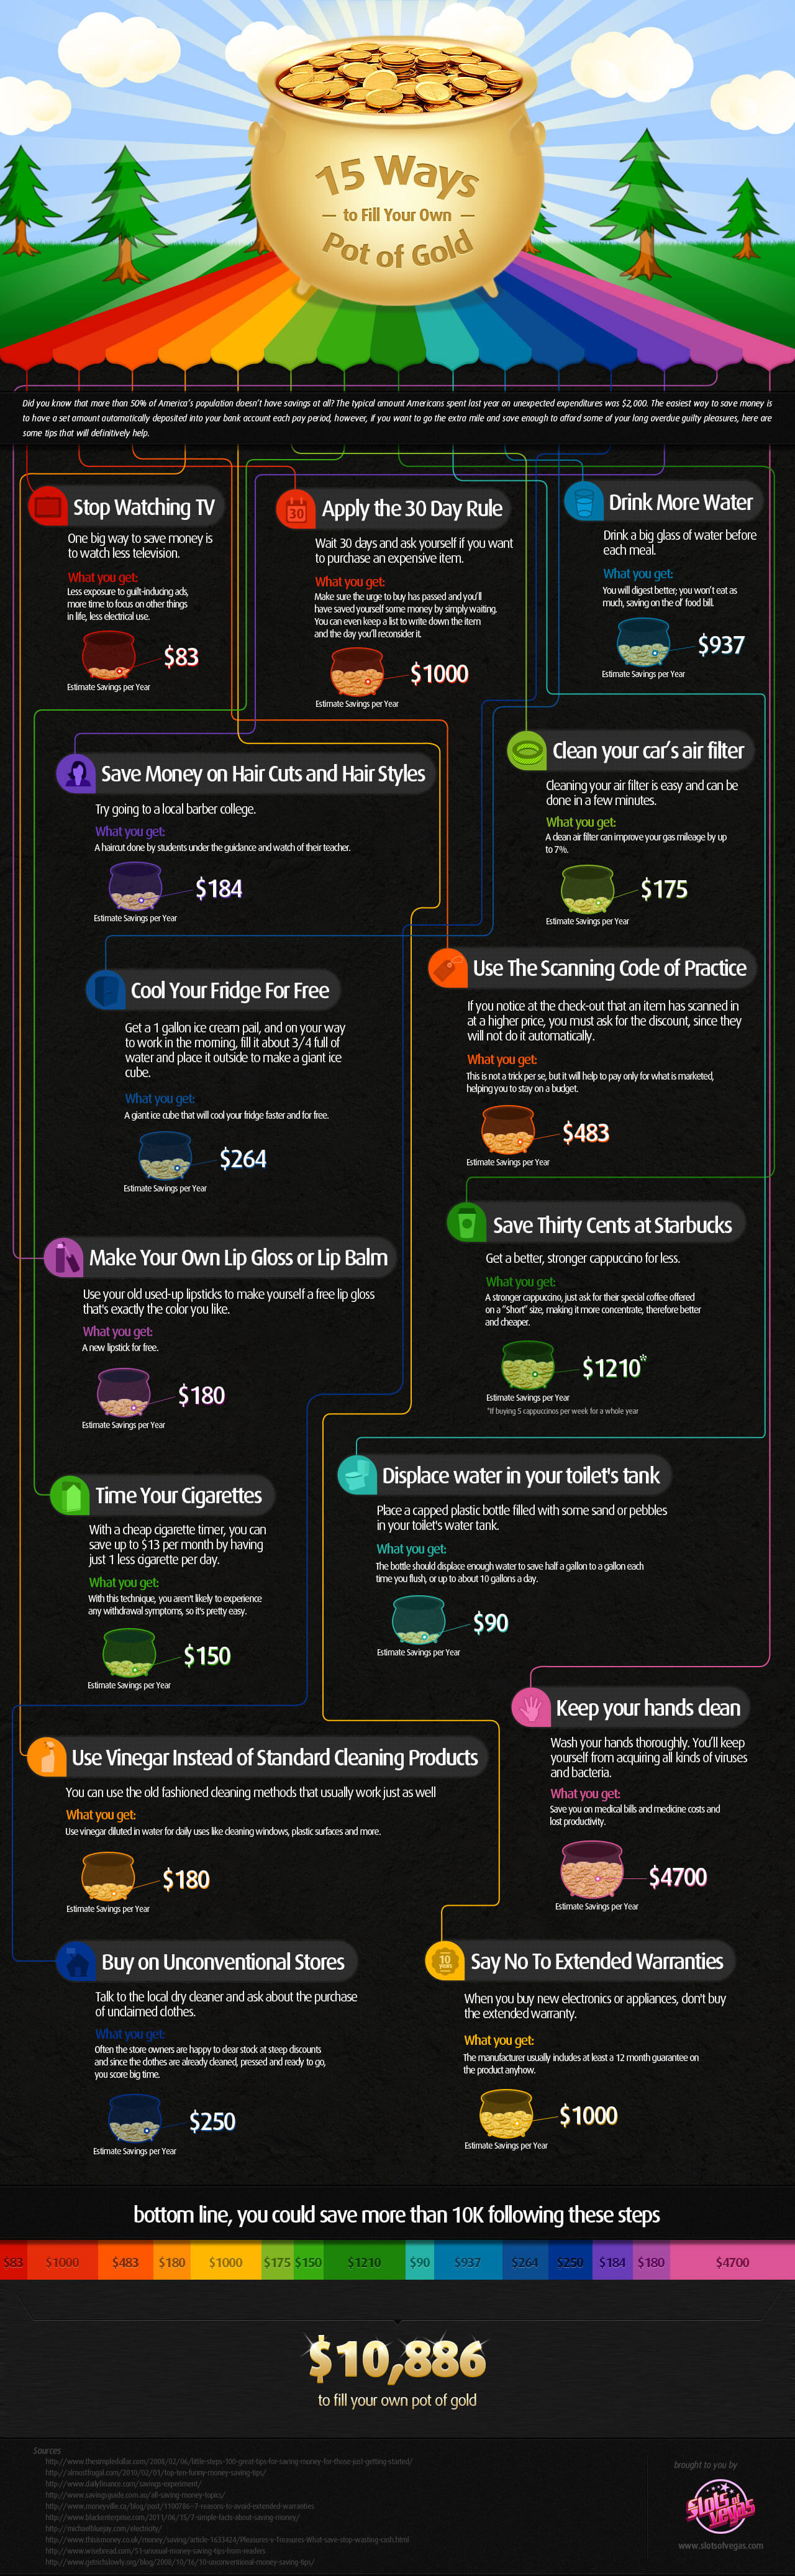 lifestyle-money-hacks-infographic-1